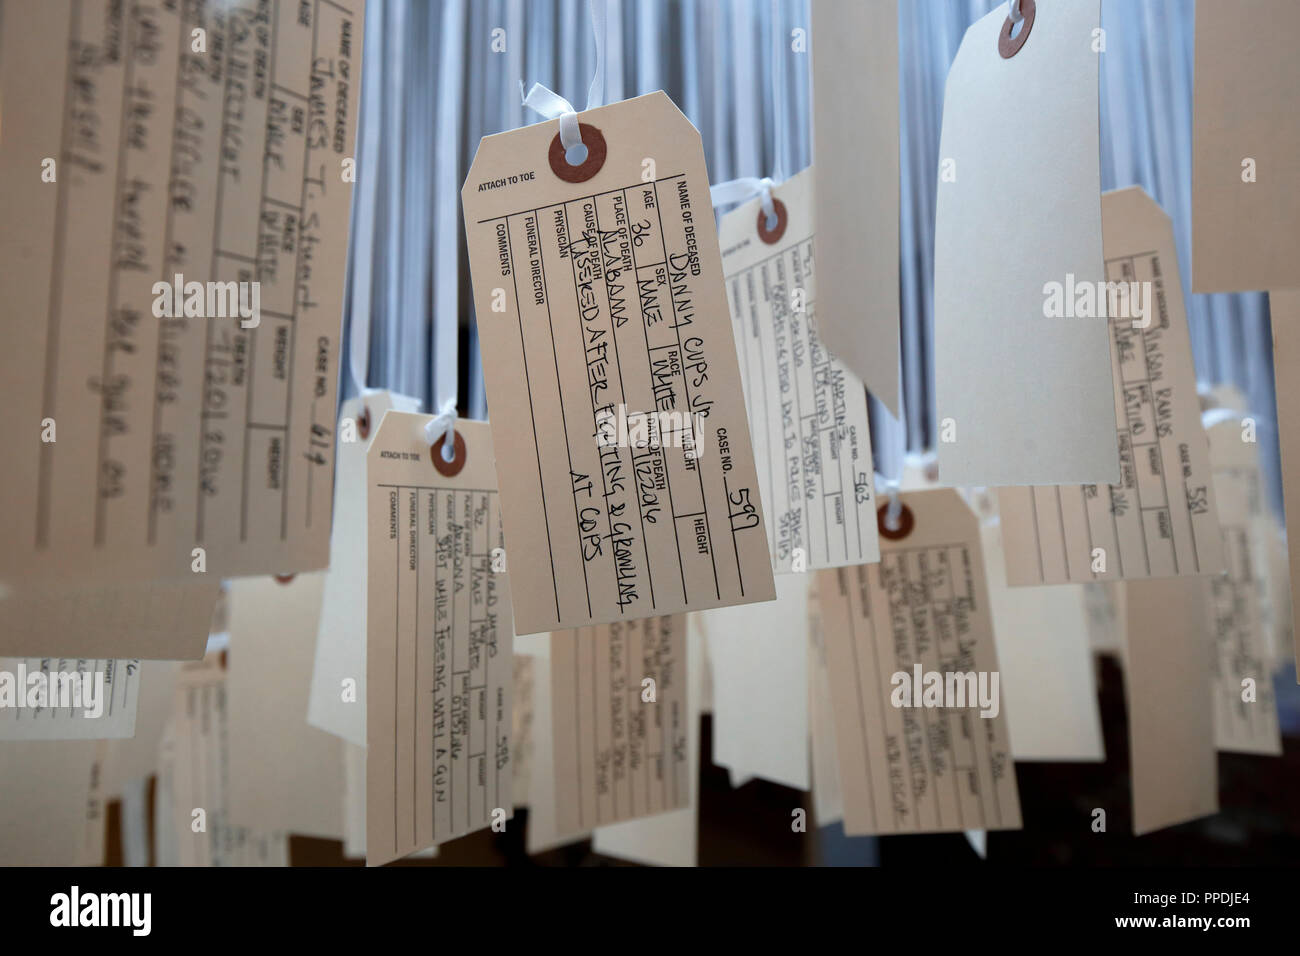 Ann Lewis 'And Counting' documenting each death at the hands of police in 2016, at the Museum of Broken Windows - Stock Image